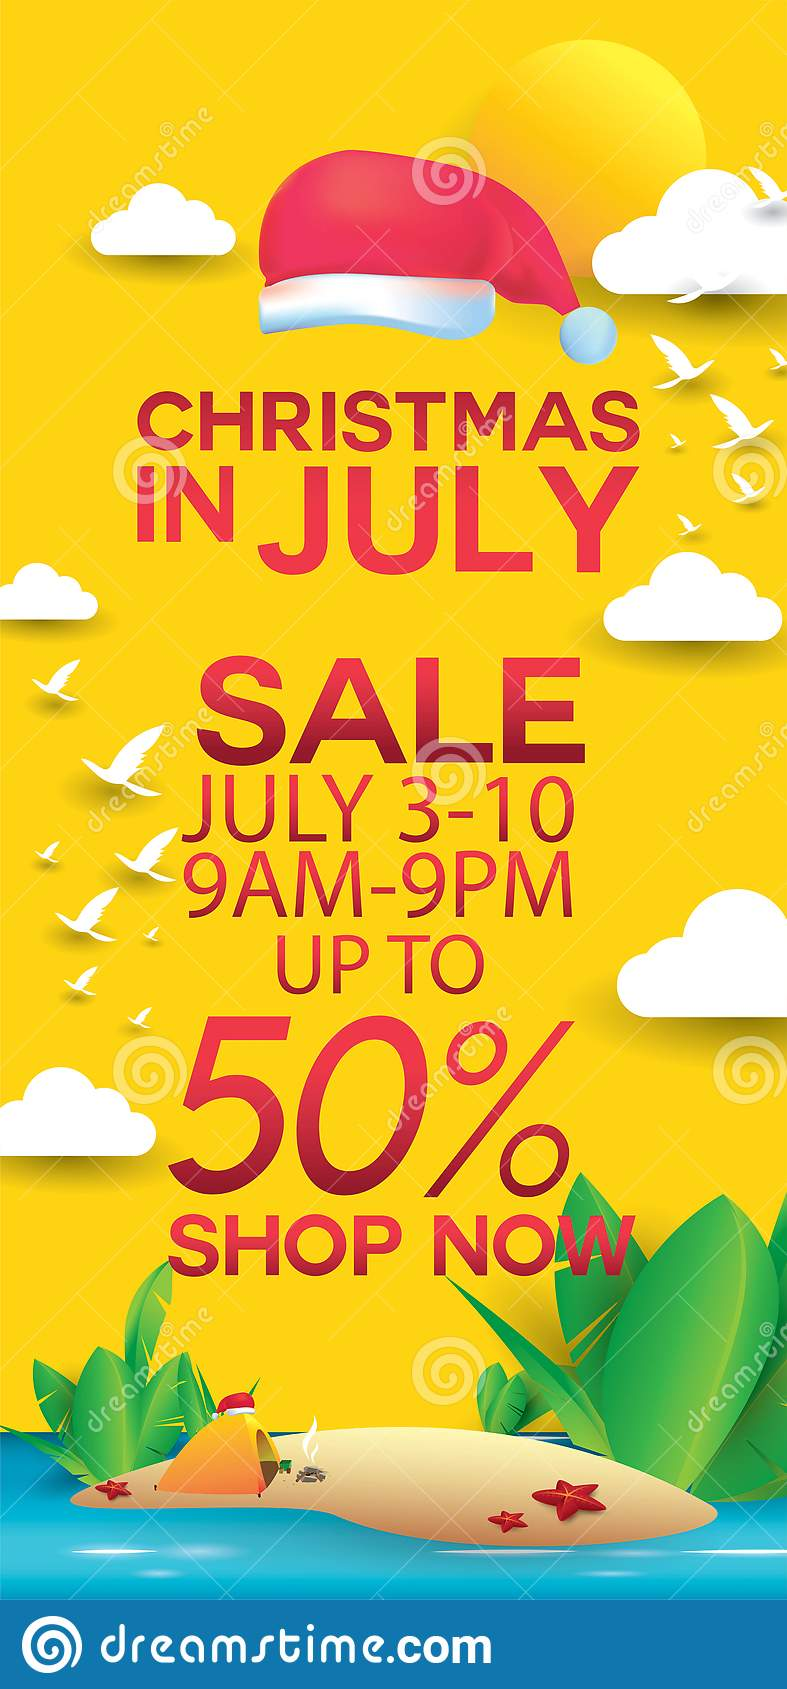 Christmas In August Poster.Christmas In July Stock Illustration Illustration Of